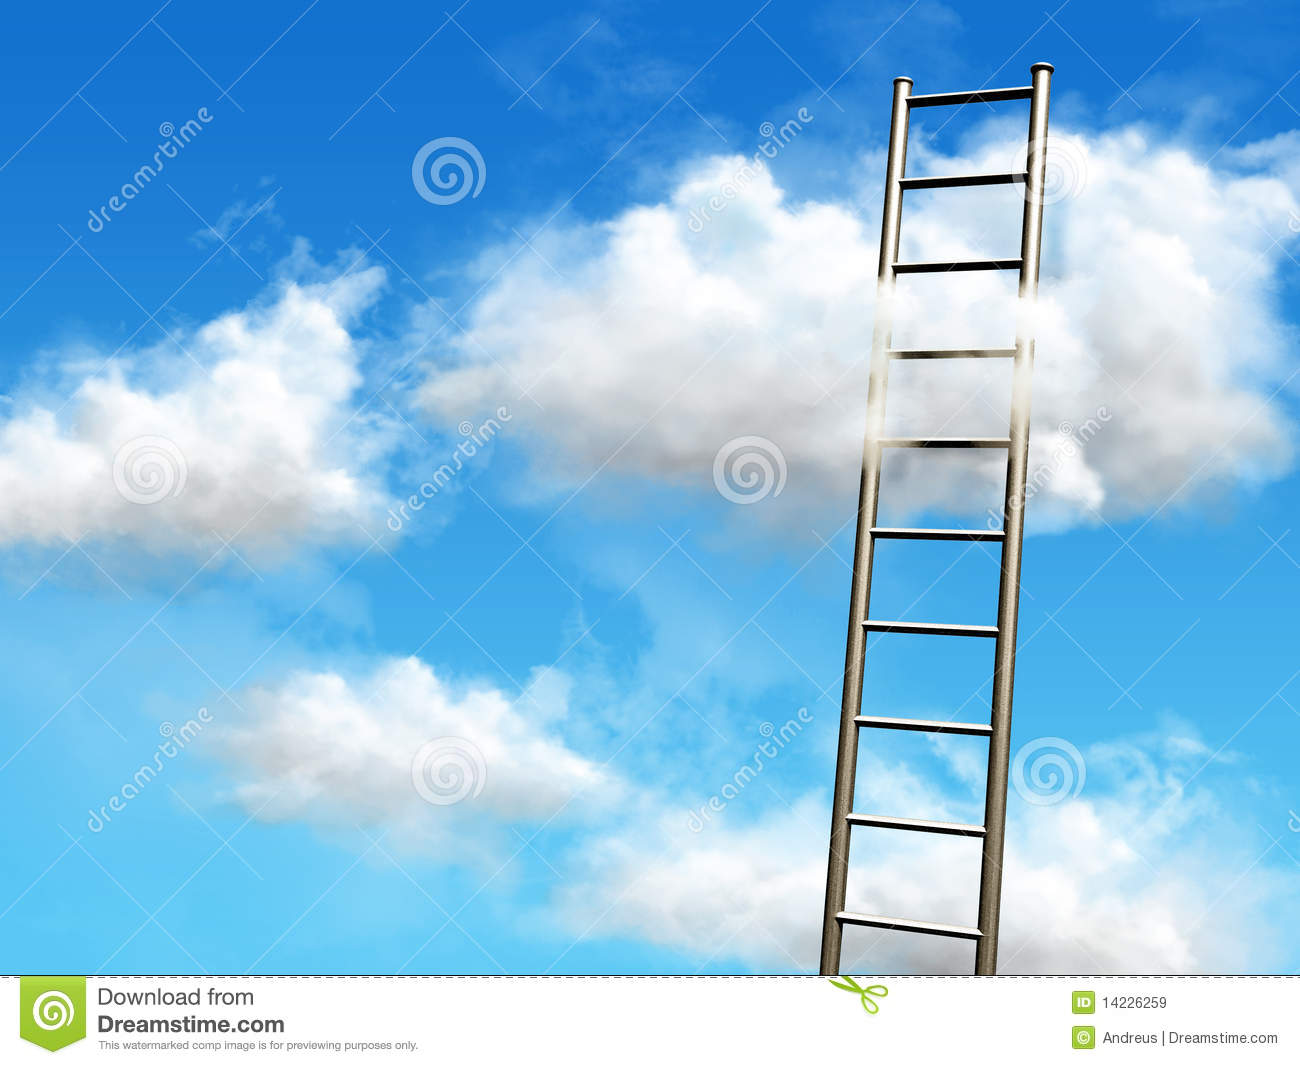 Reach For Clouds >> Stairs To The Clouds Stock Illustration Illustration Of Design